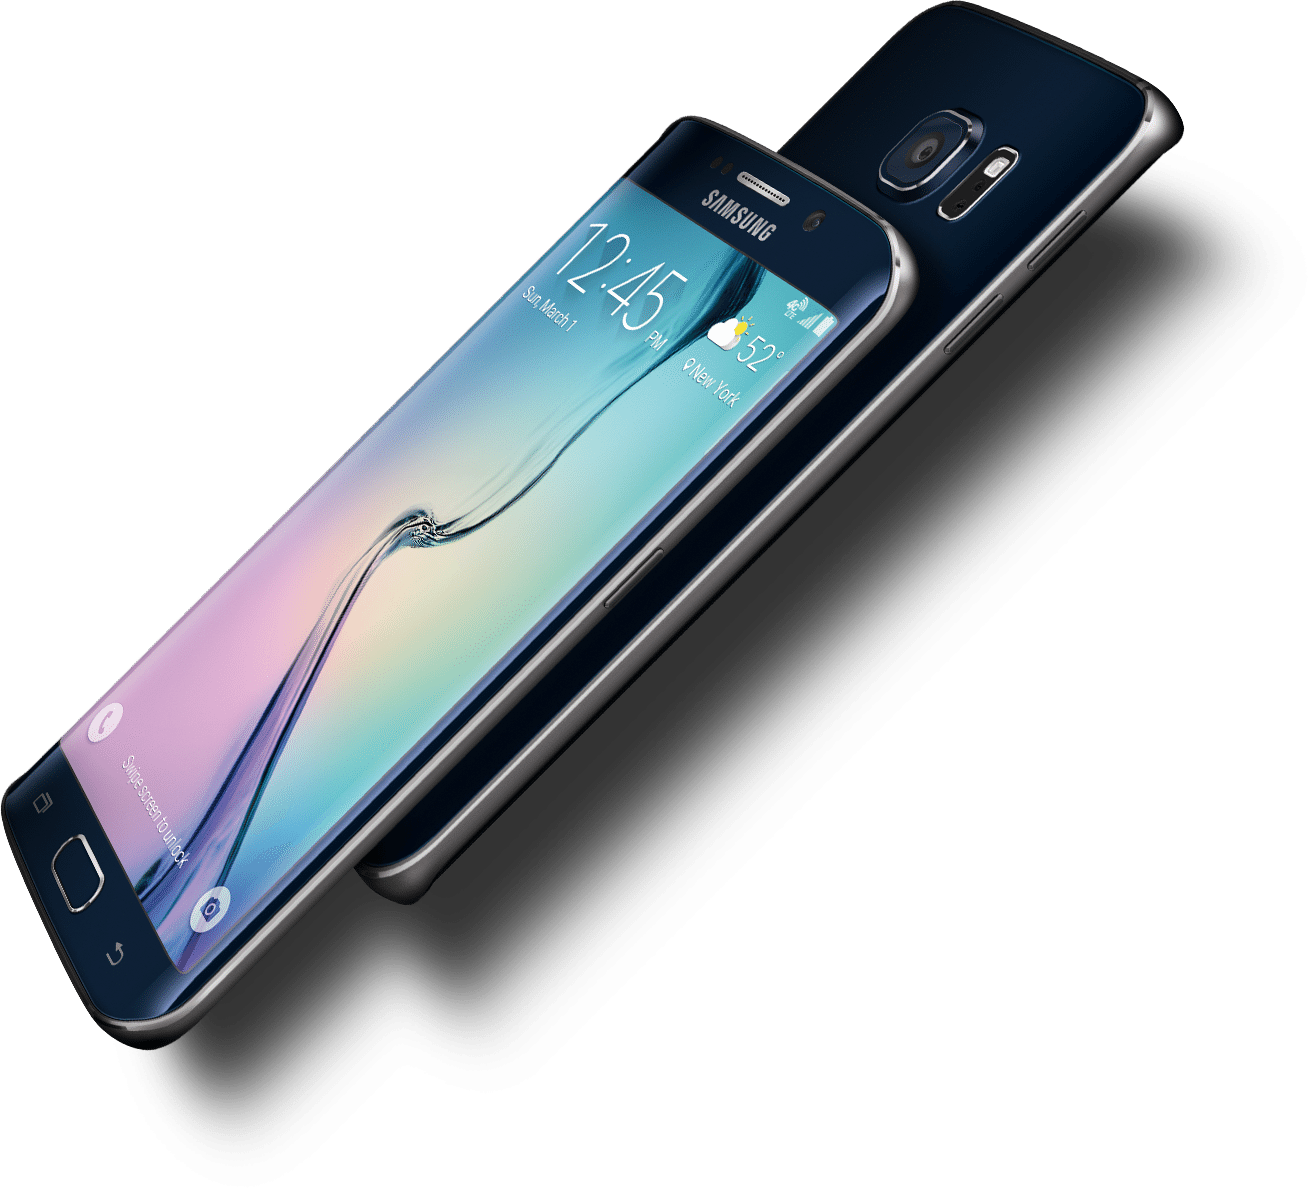 Samsung-GalaxyDD-S6-edge---all-the-official-images.jpg